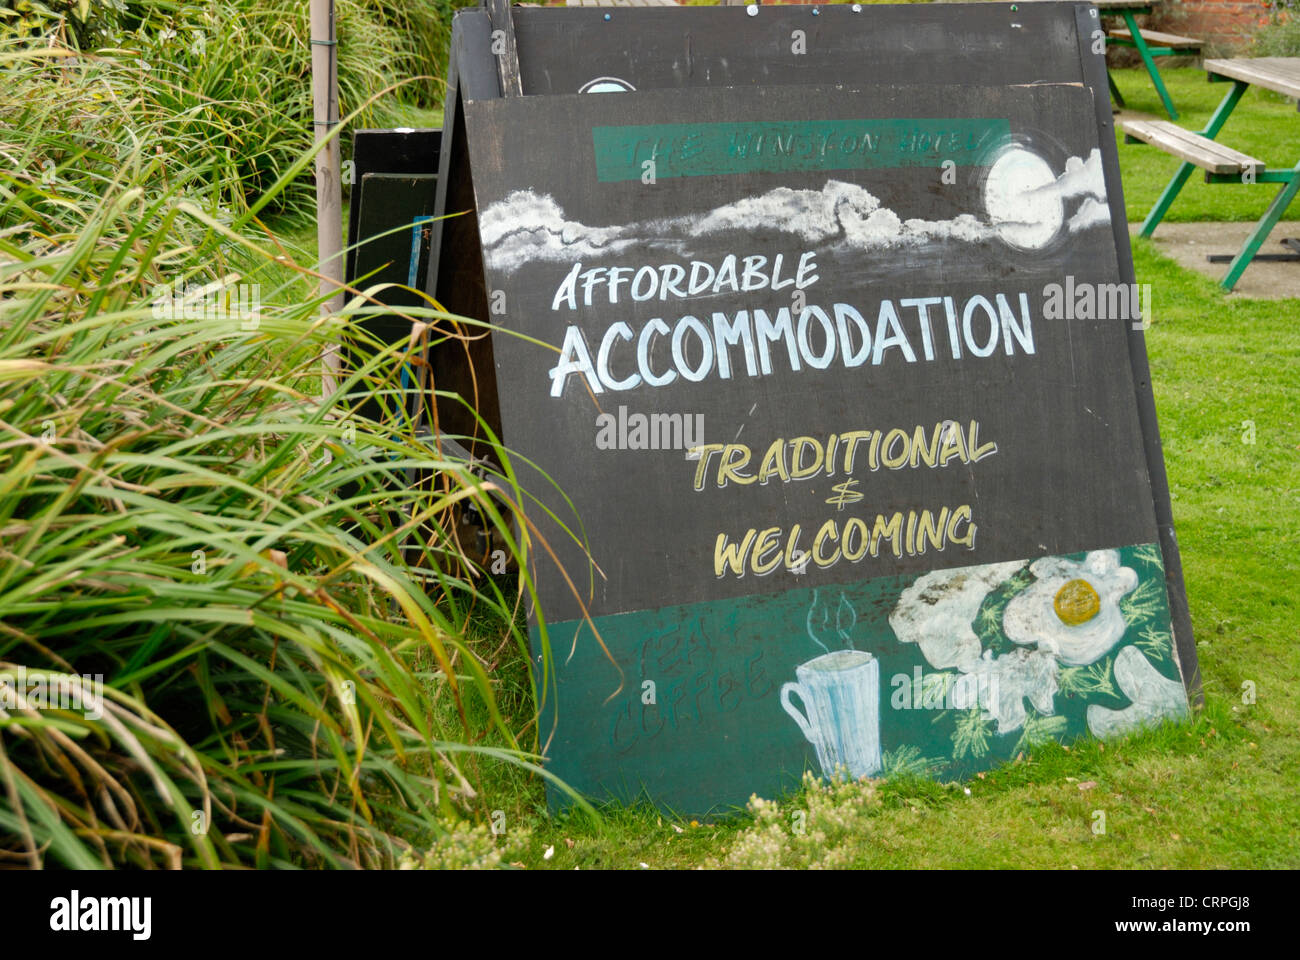 Sign outside The Winston Hotel advertising affordable accommodation. - Stock Image